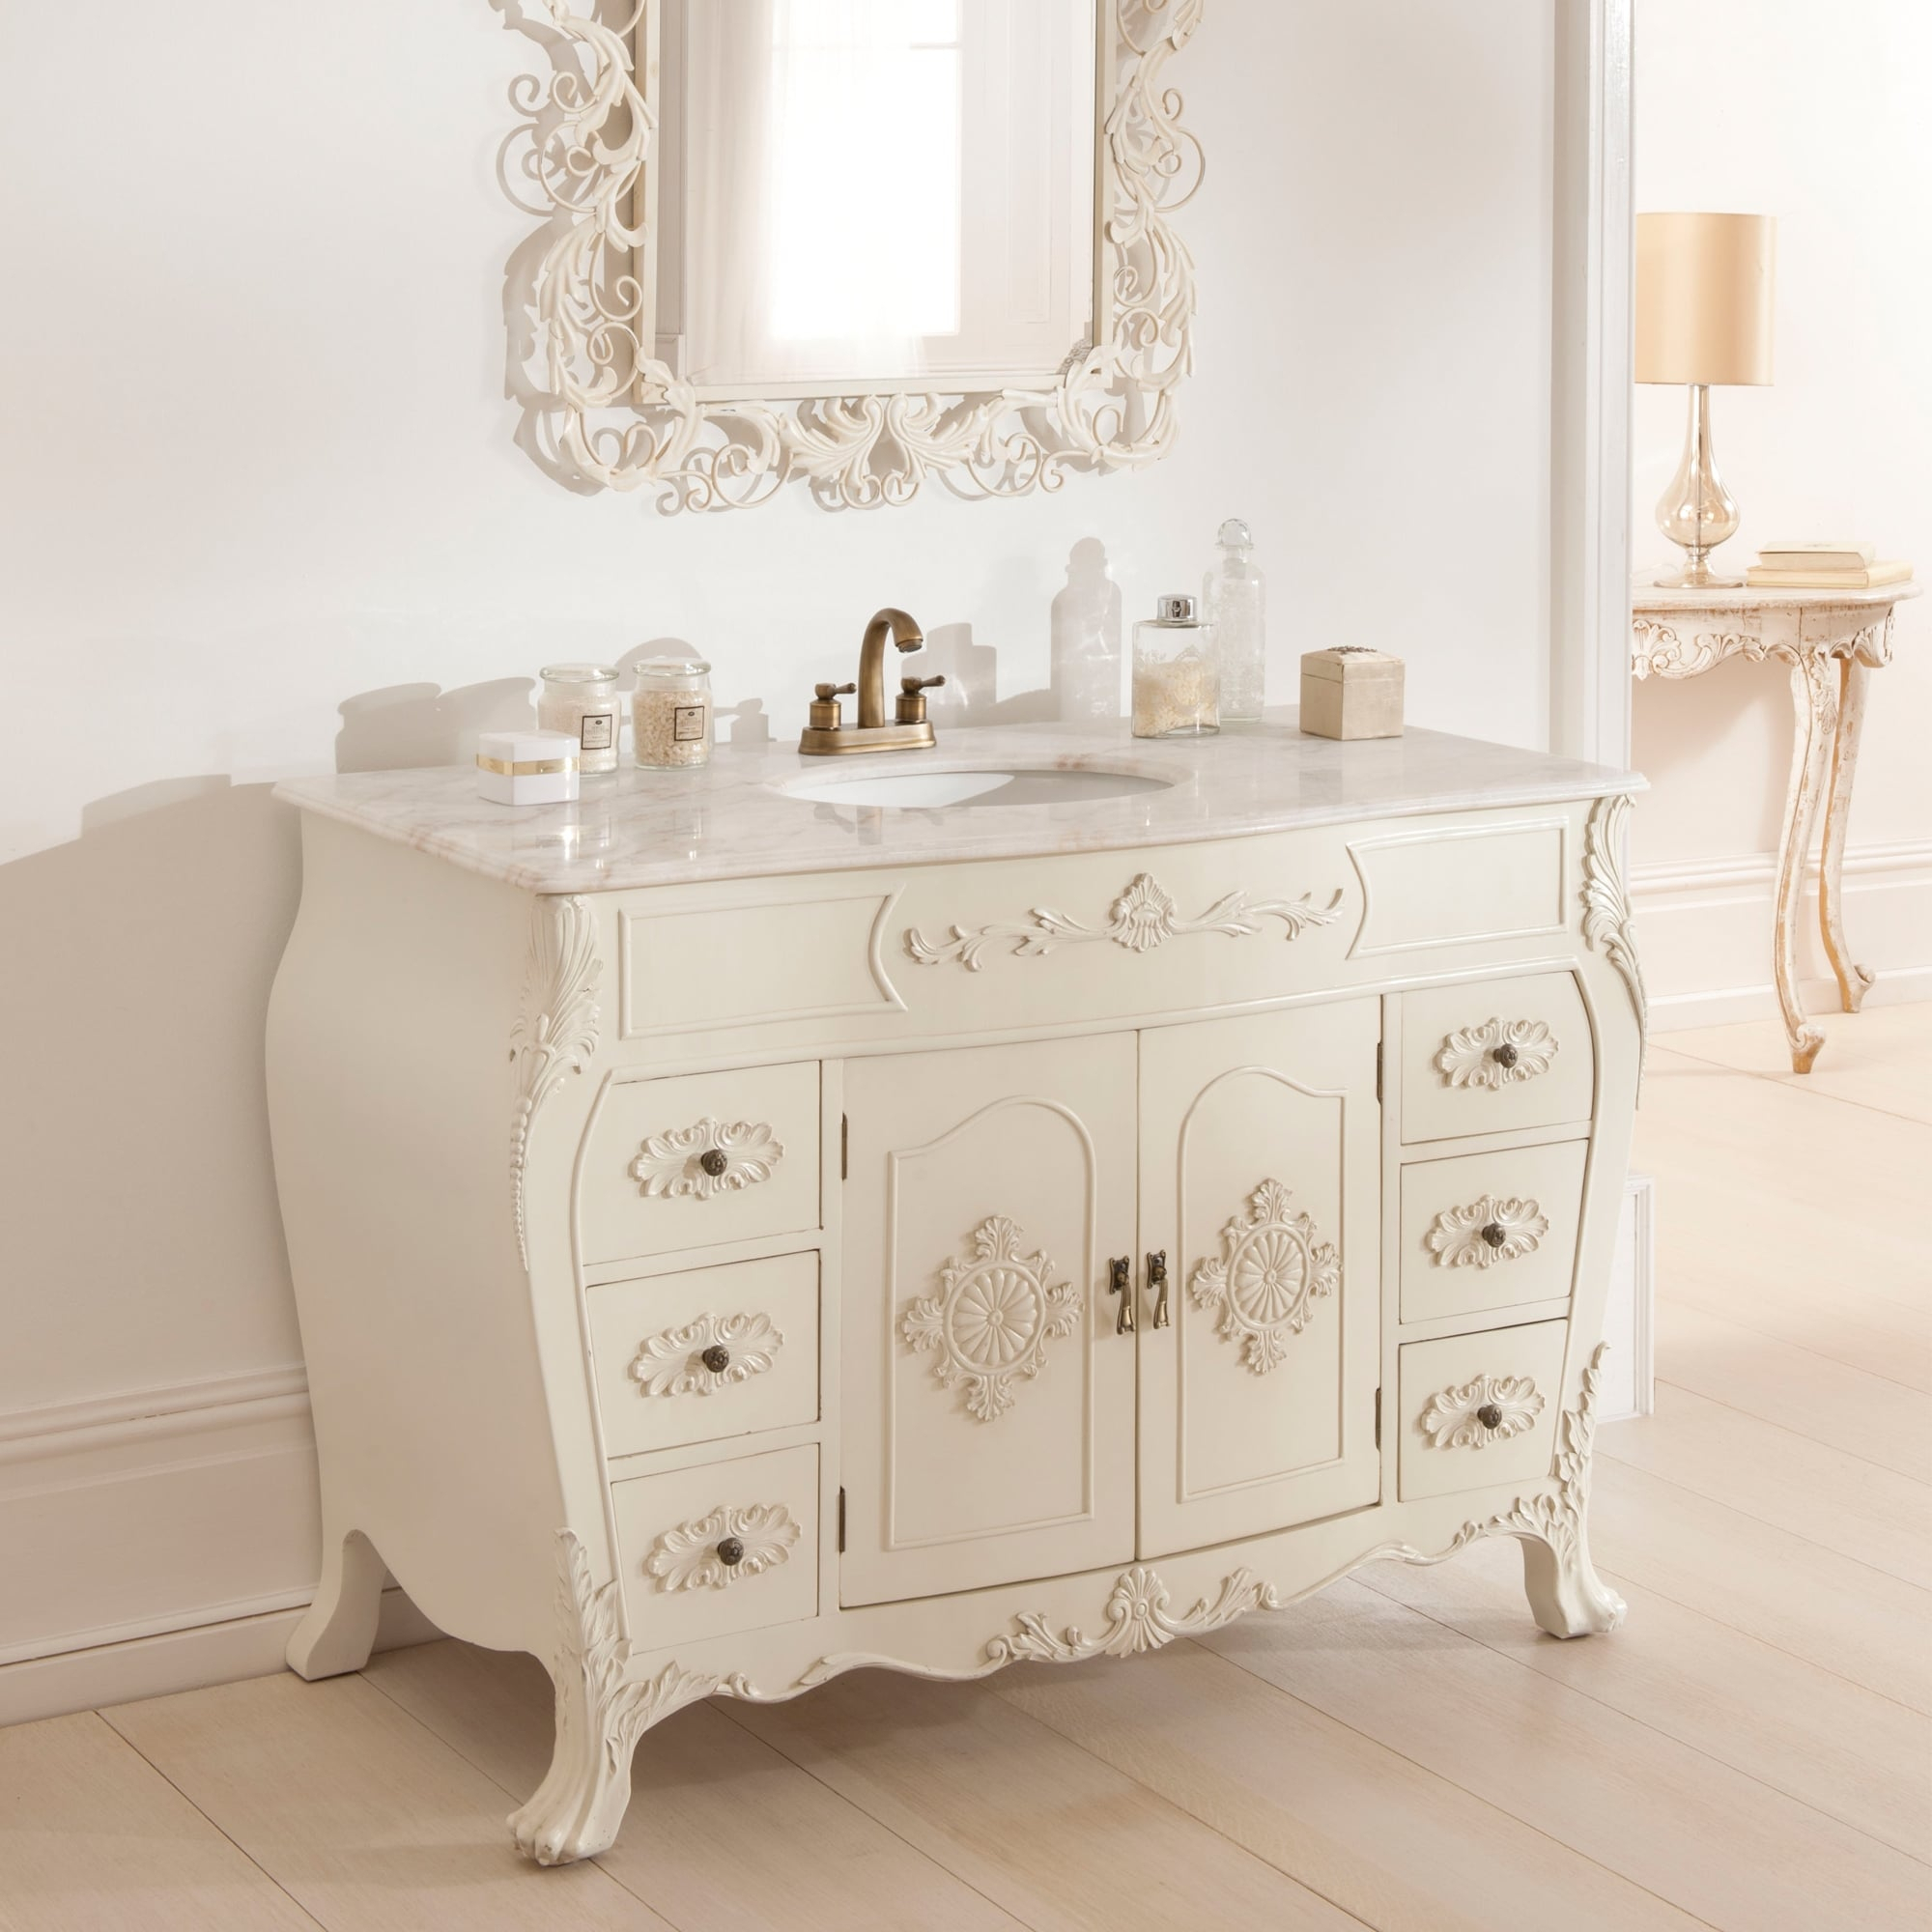 Shab Chic Bathroom Cabinet Furniture Antique French Vanity Unit inside proportions 2000 X 2000